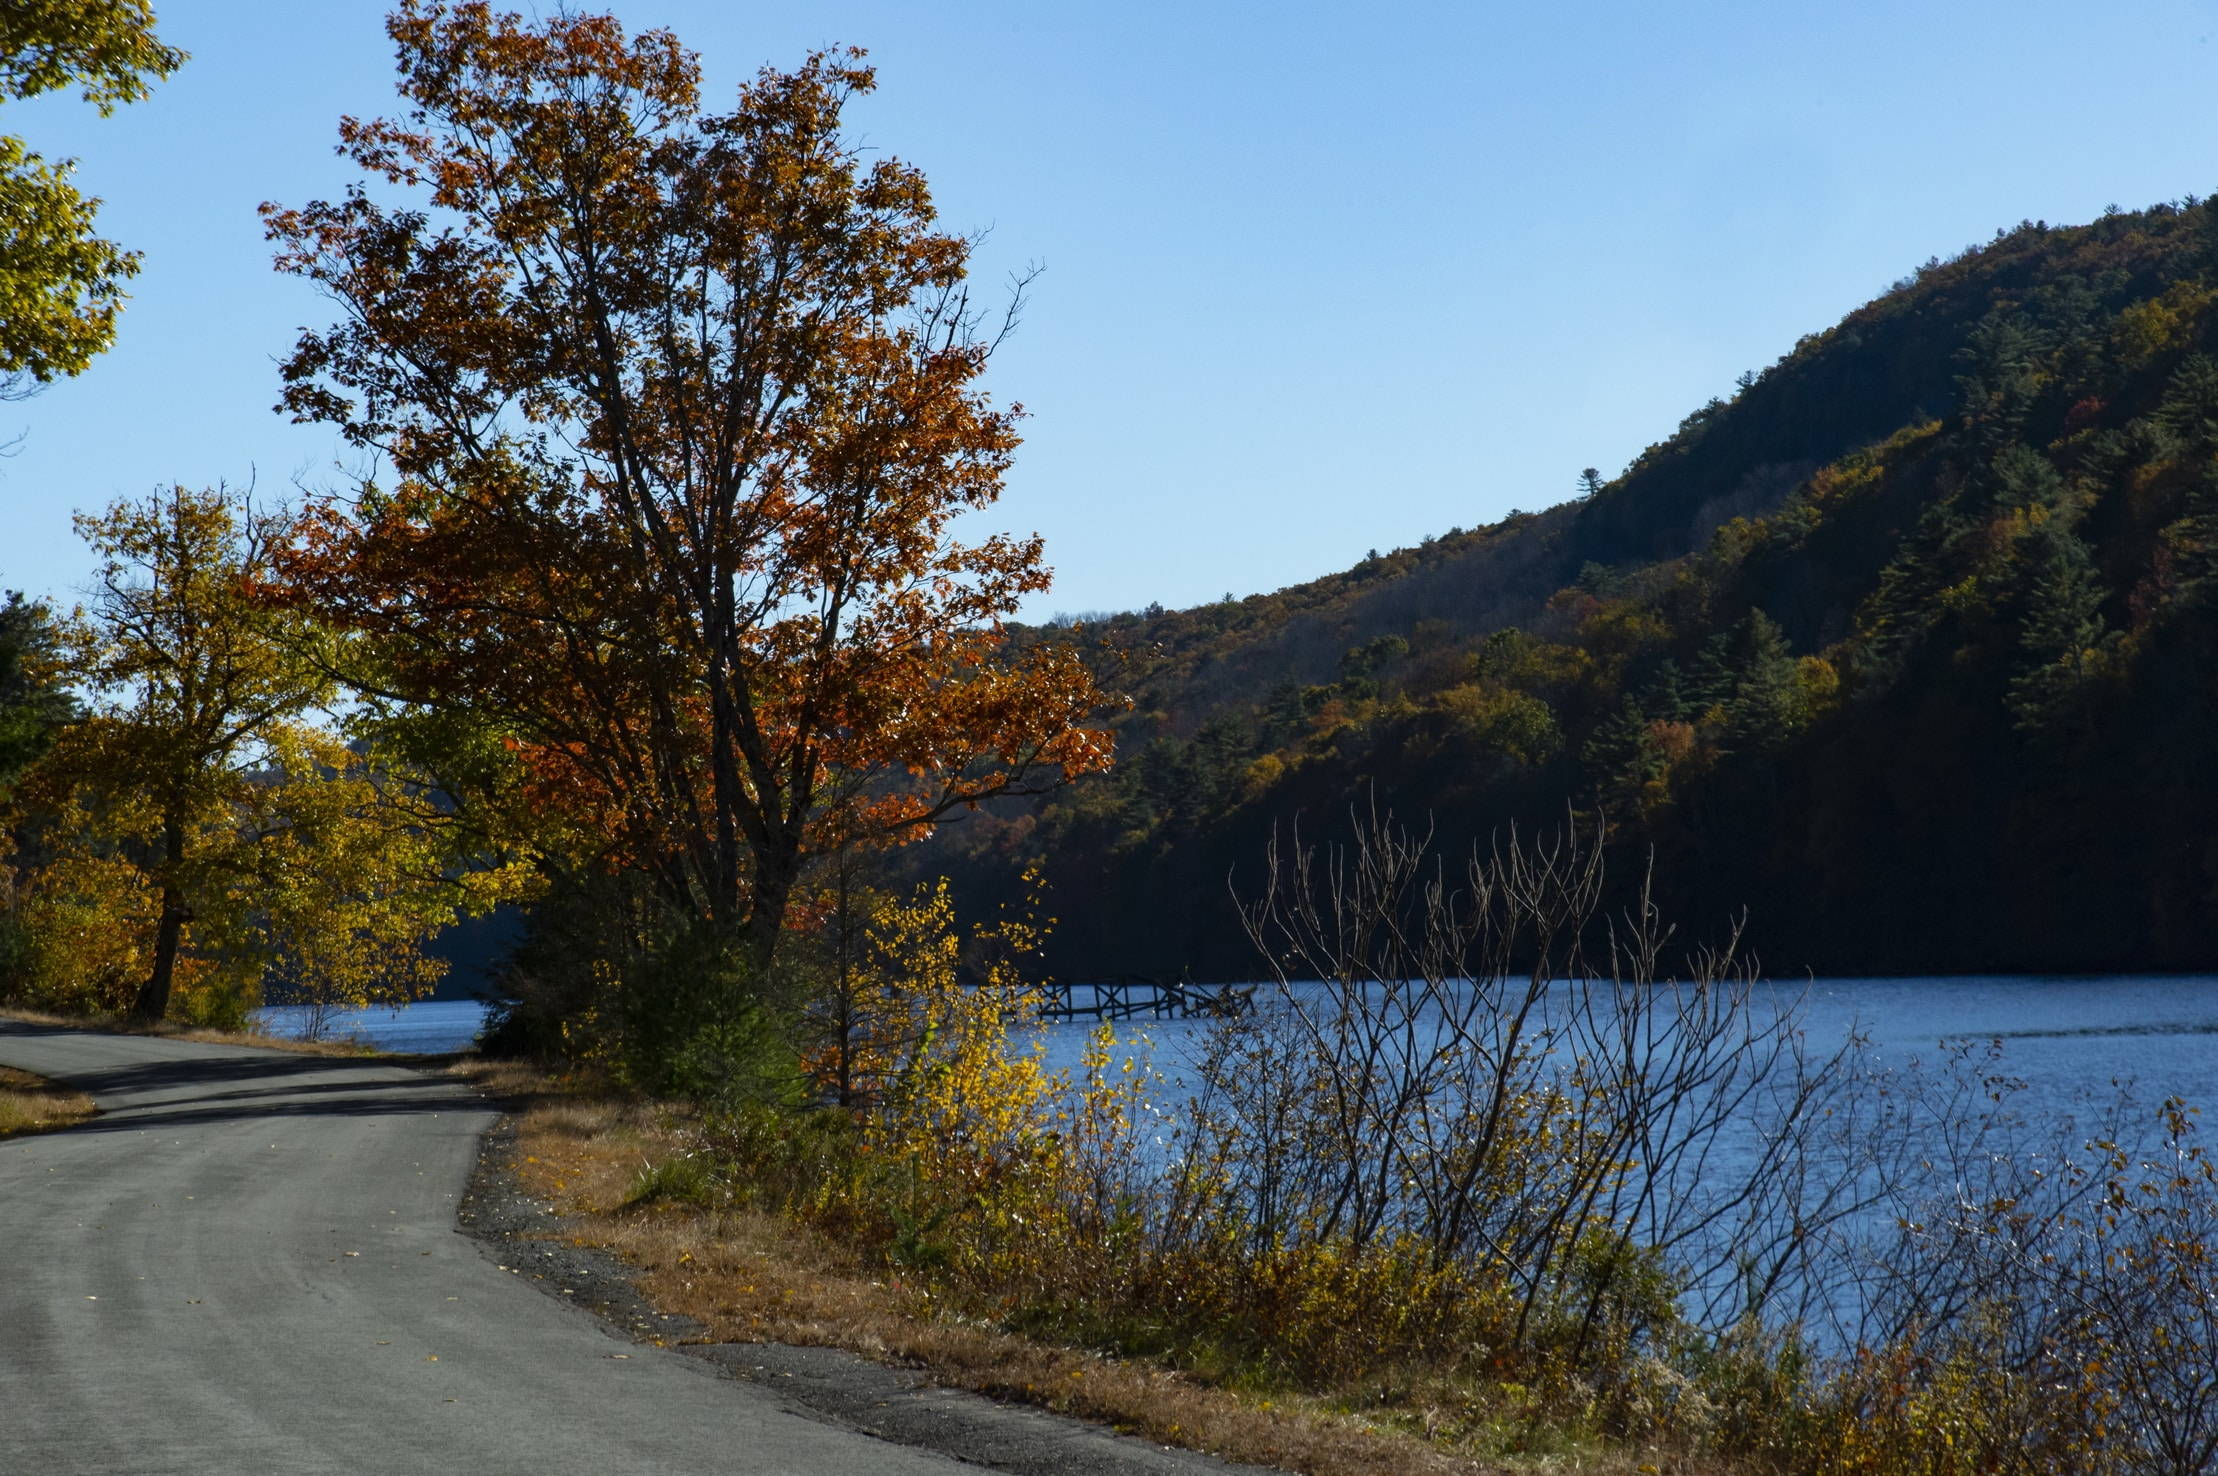 Take a scenic drive through the Catskills this fall.